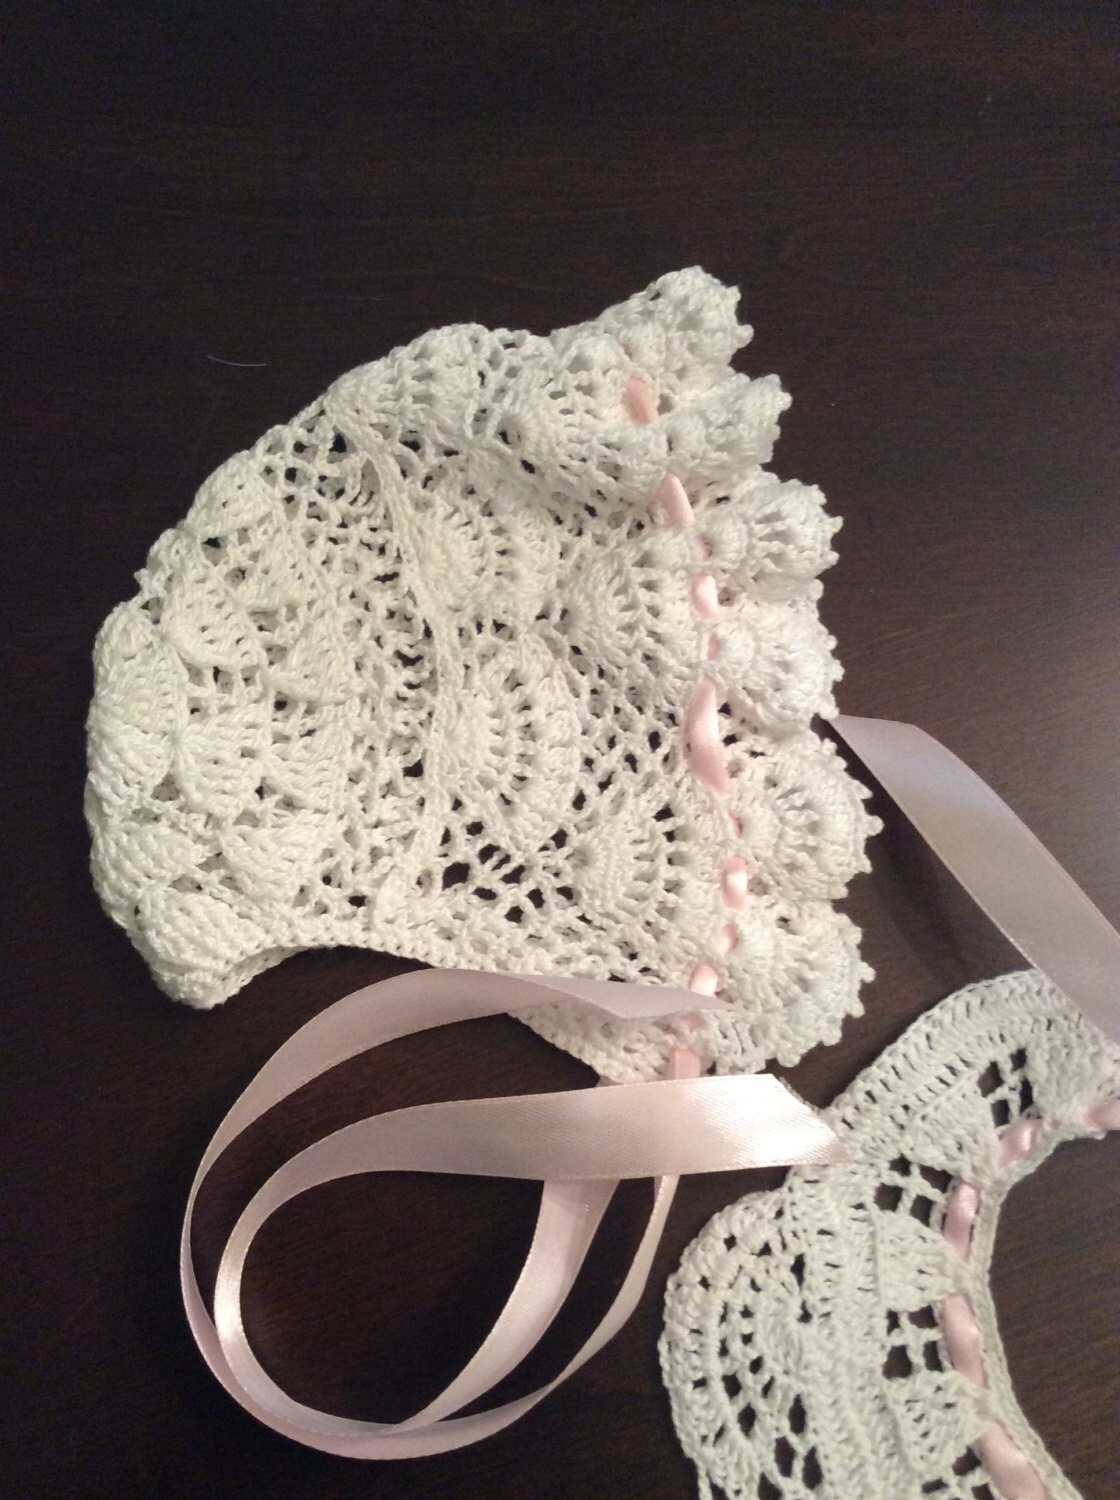 Crochet Baby Dress And Bonnet Pattern : baby Andrea crochet bonnet pdf pattern baby bonnet infant